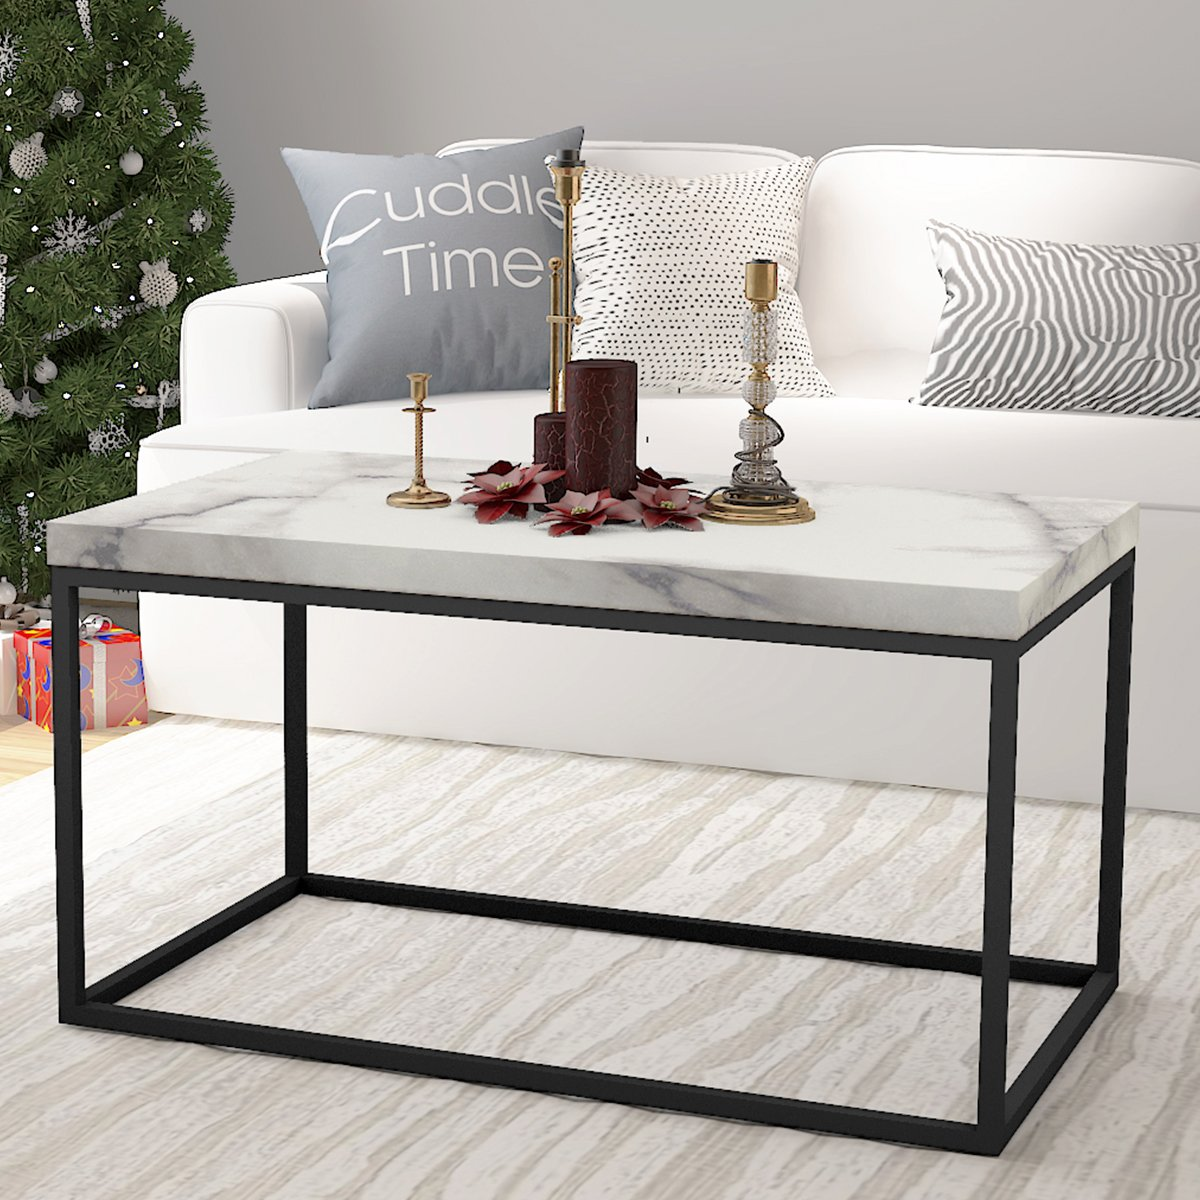 rectangle cocktail table find room essentials white accent get quotations roomfitters faux marble top coffee living metal glass side ikea lounge ethan allen console house